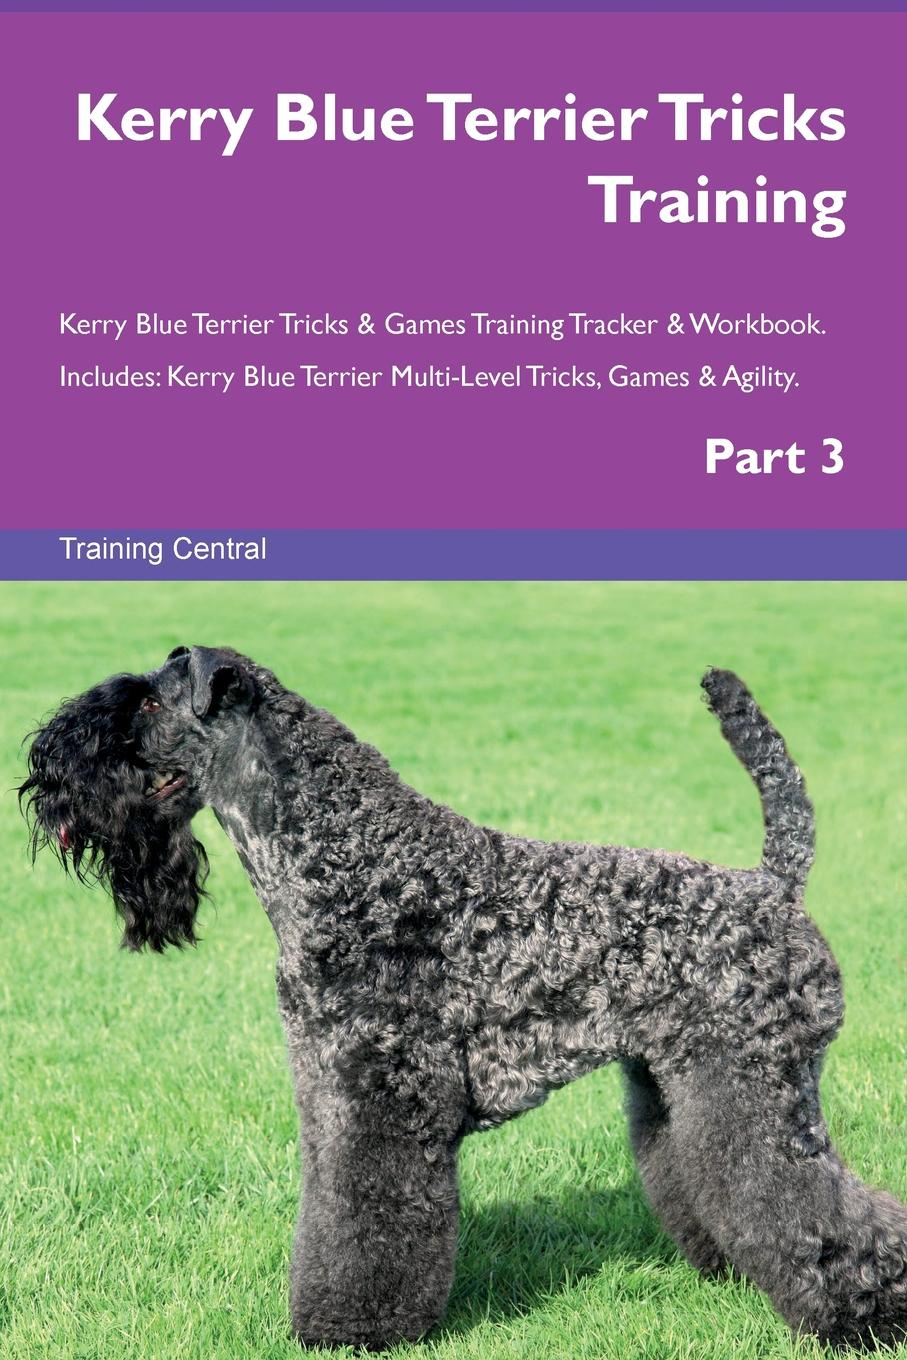 Training Central Kerry Blue Terrier Tricks & Games Tracker Workbook. Includes. Multi-Level Tricks, Agility. Part 3